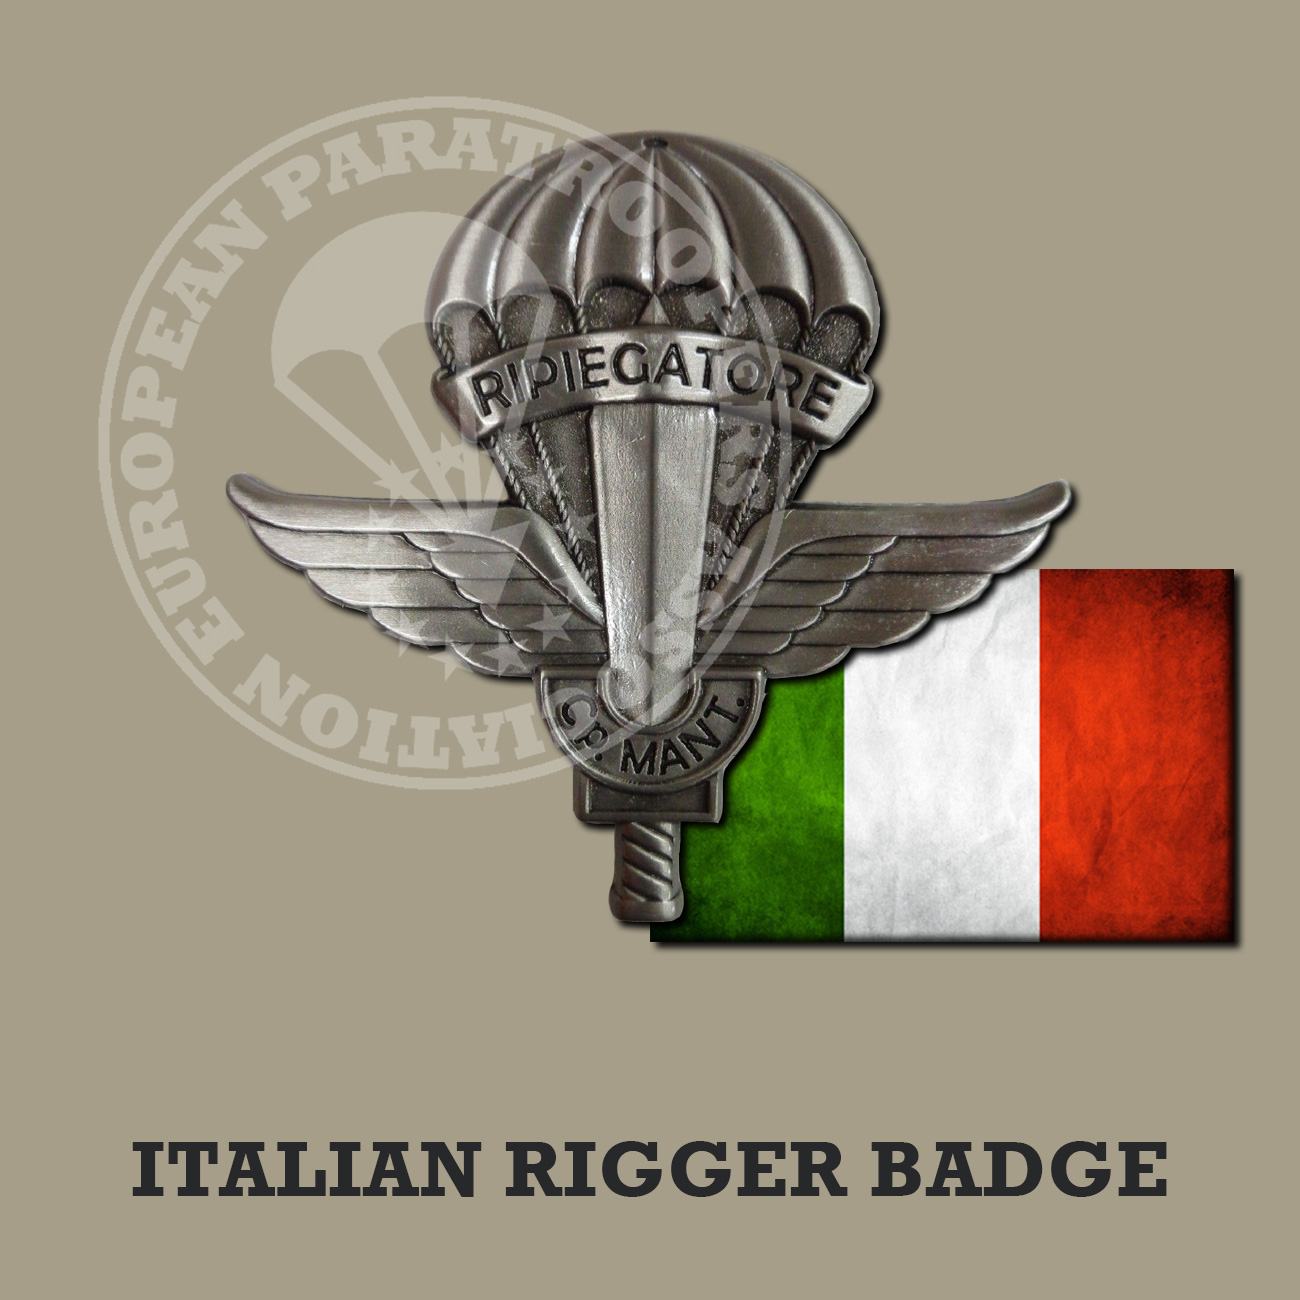 ITALIAN RIGGER BADGE